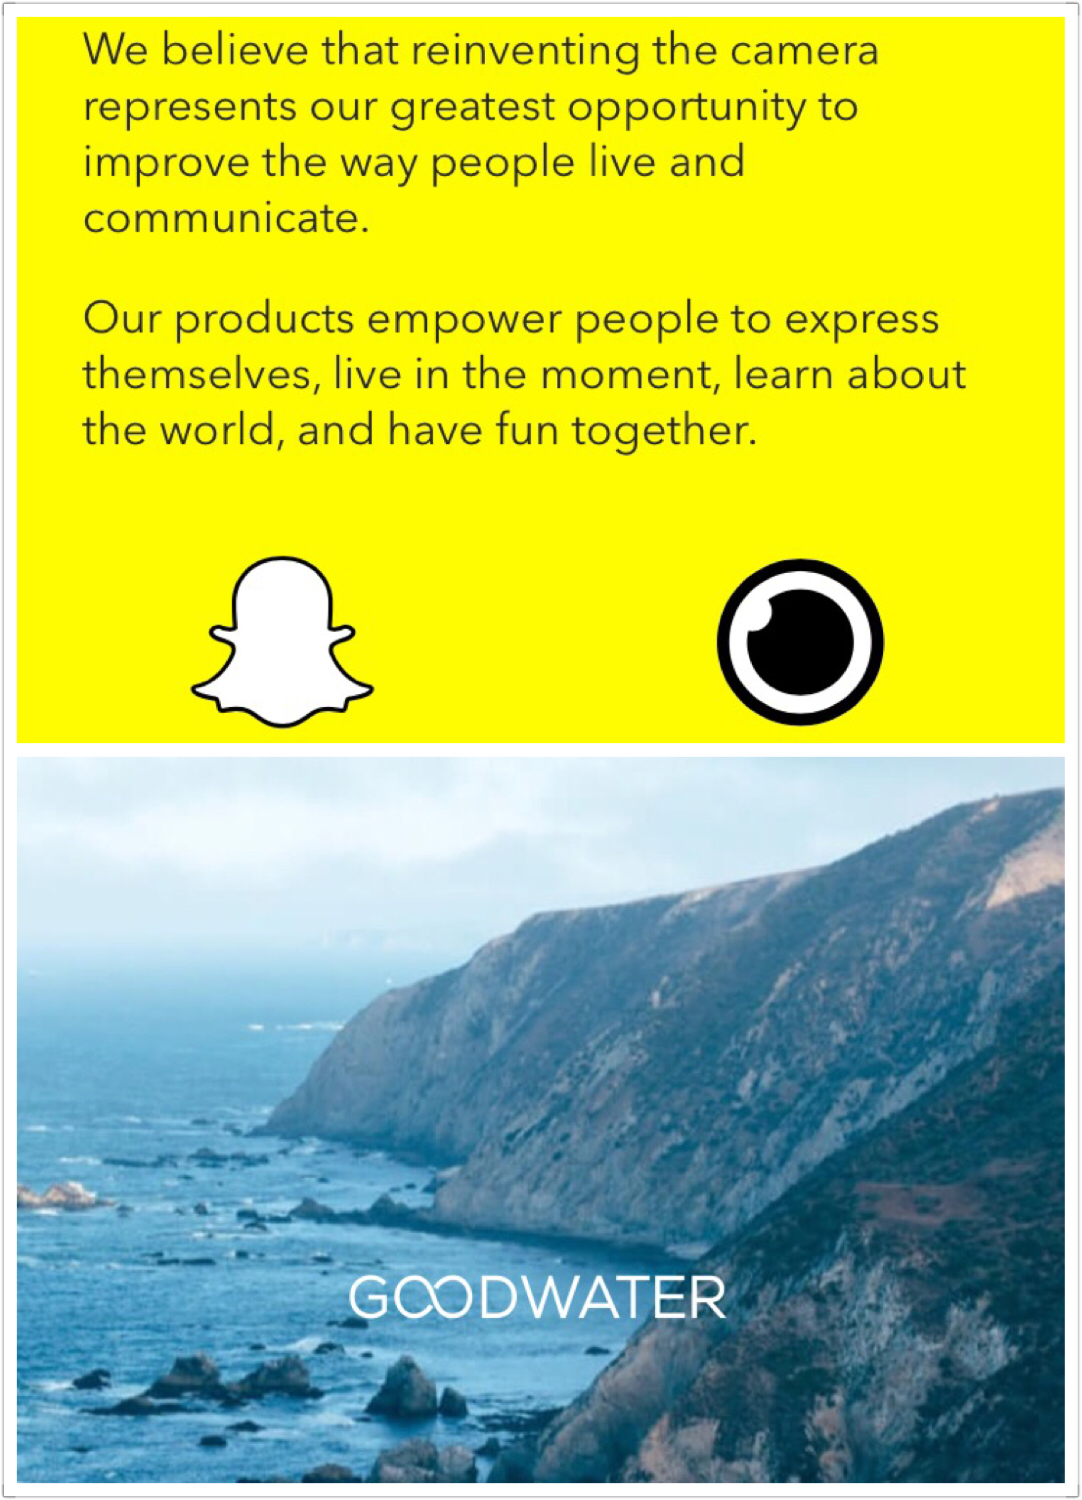 Goldwater Capital just produced one of the first detailed equity research reports on Snap Inc.